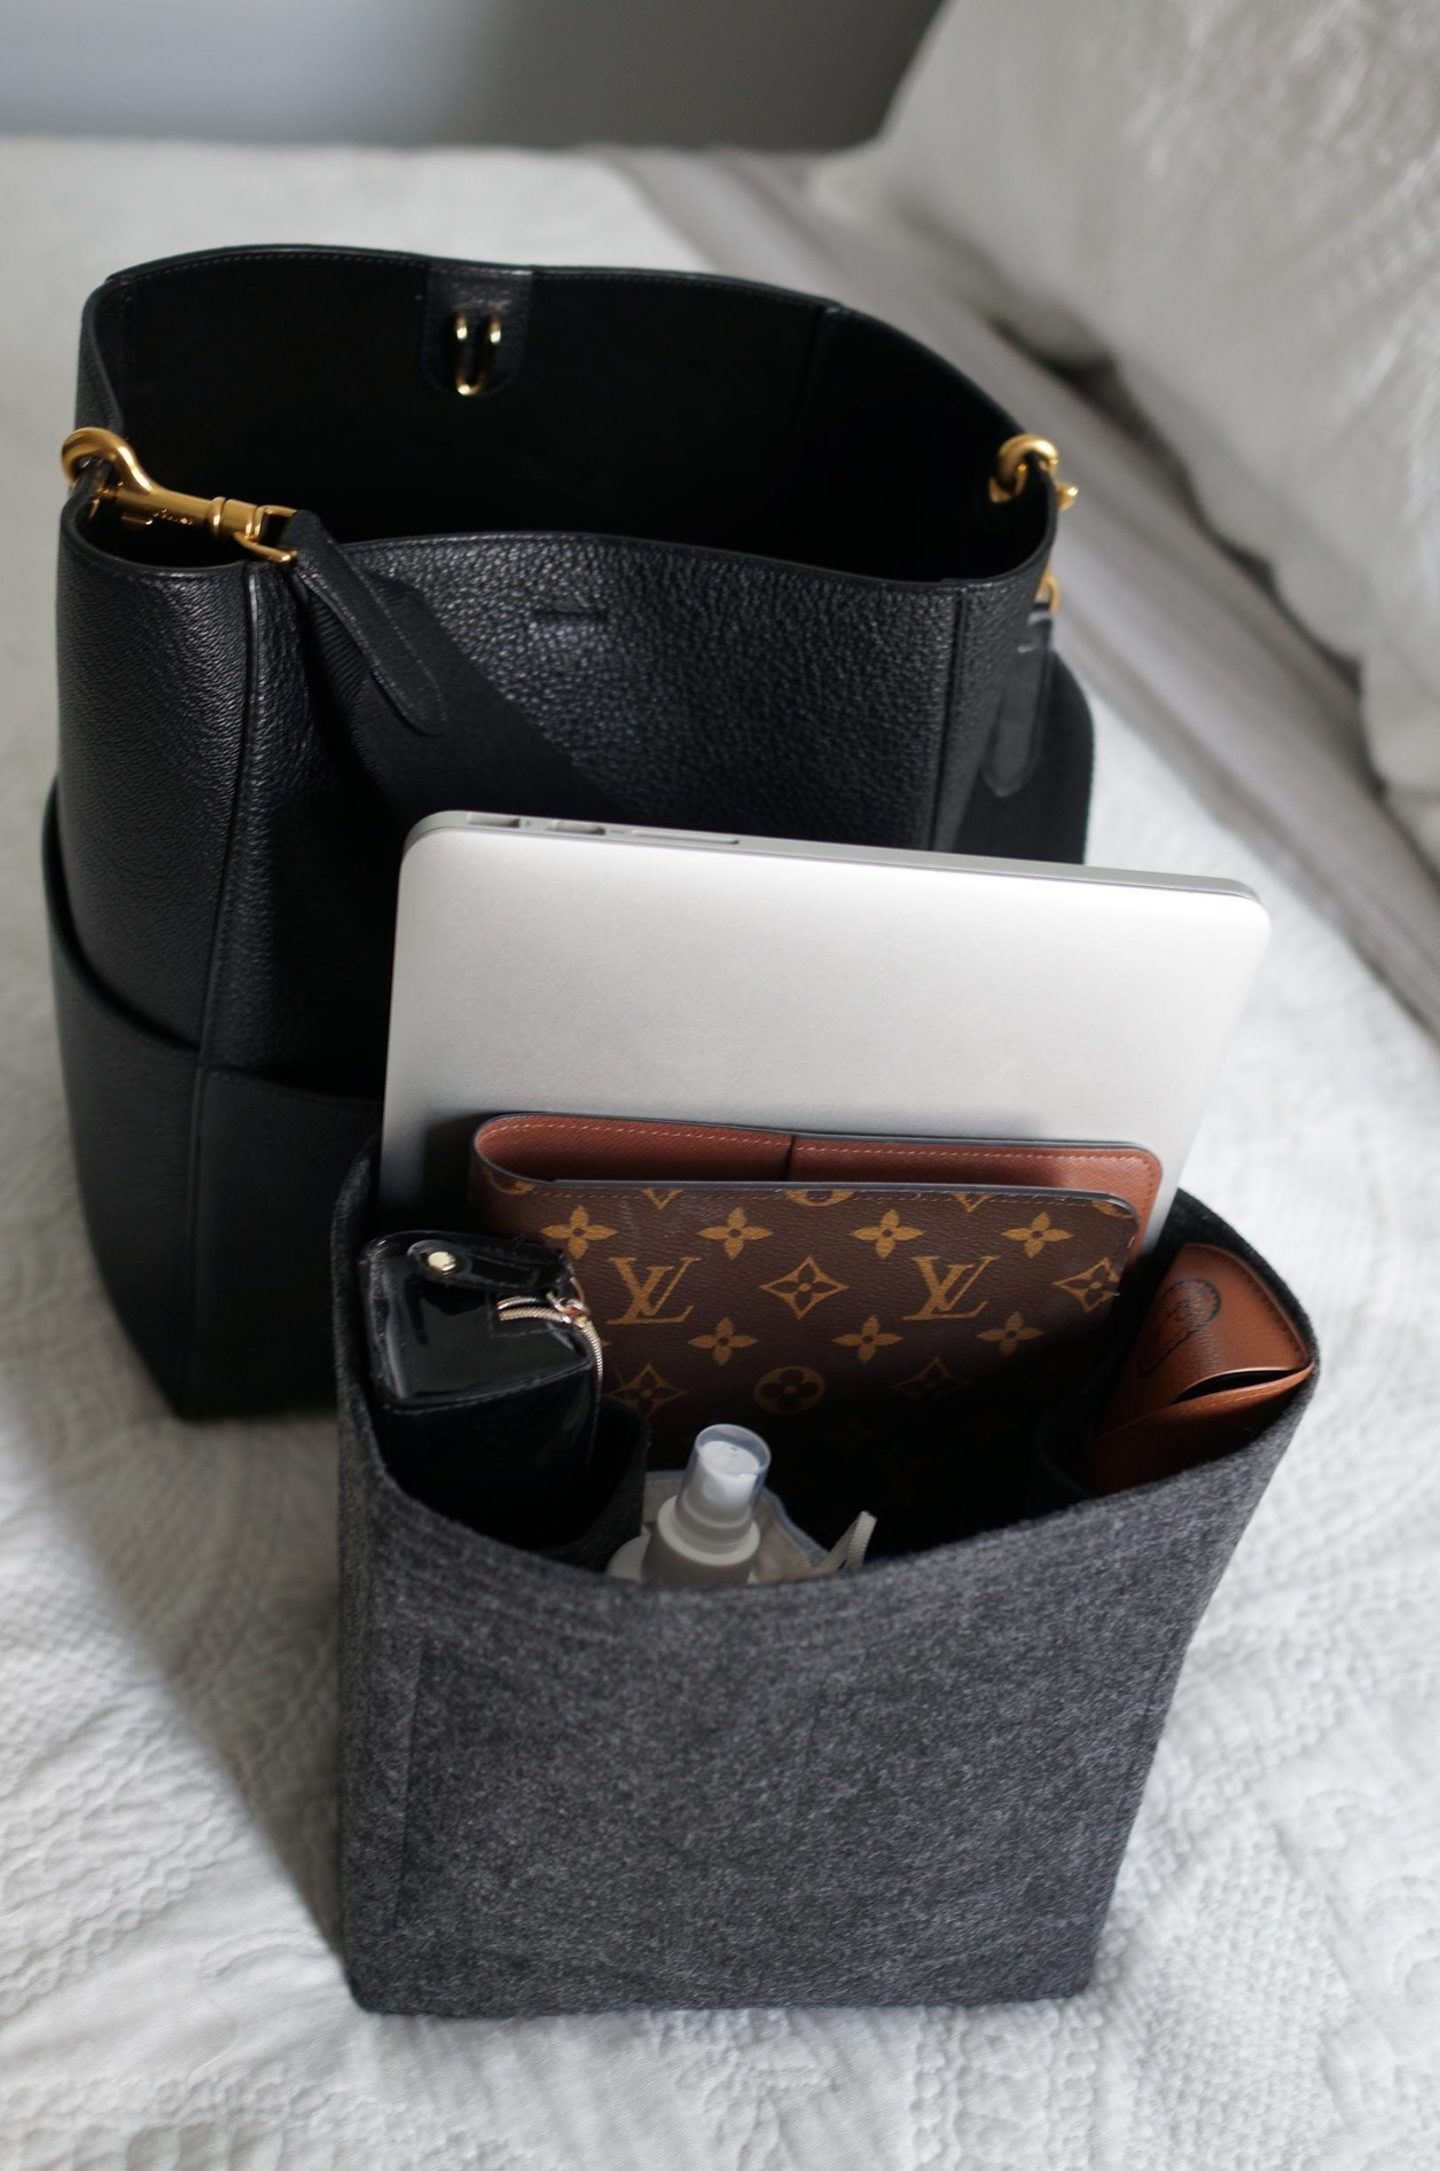 photo of celine bag with bag organiser in blog post about caring for handbags so they last